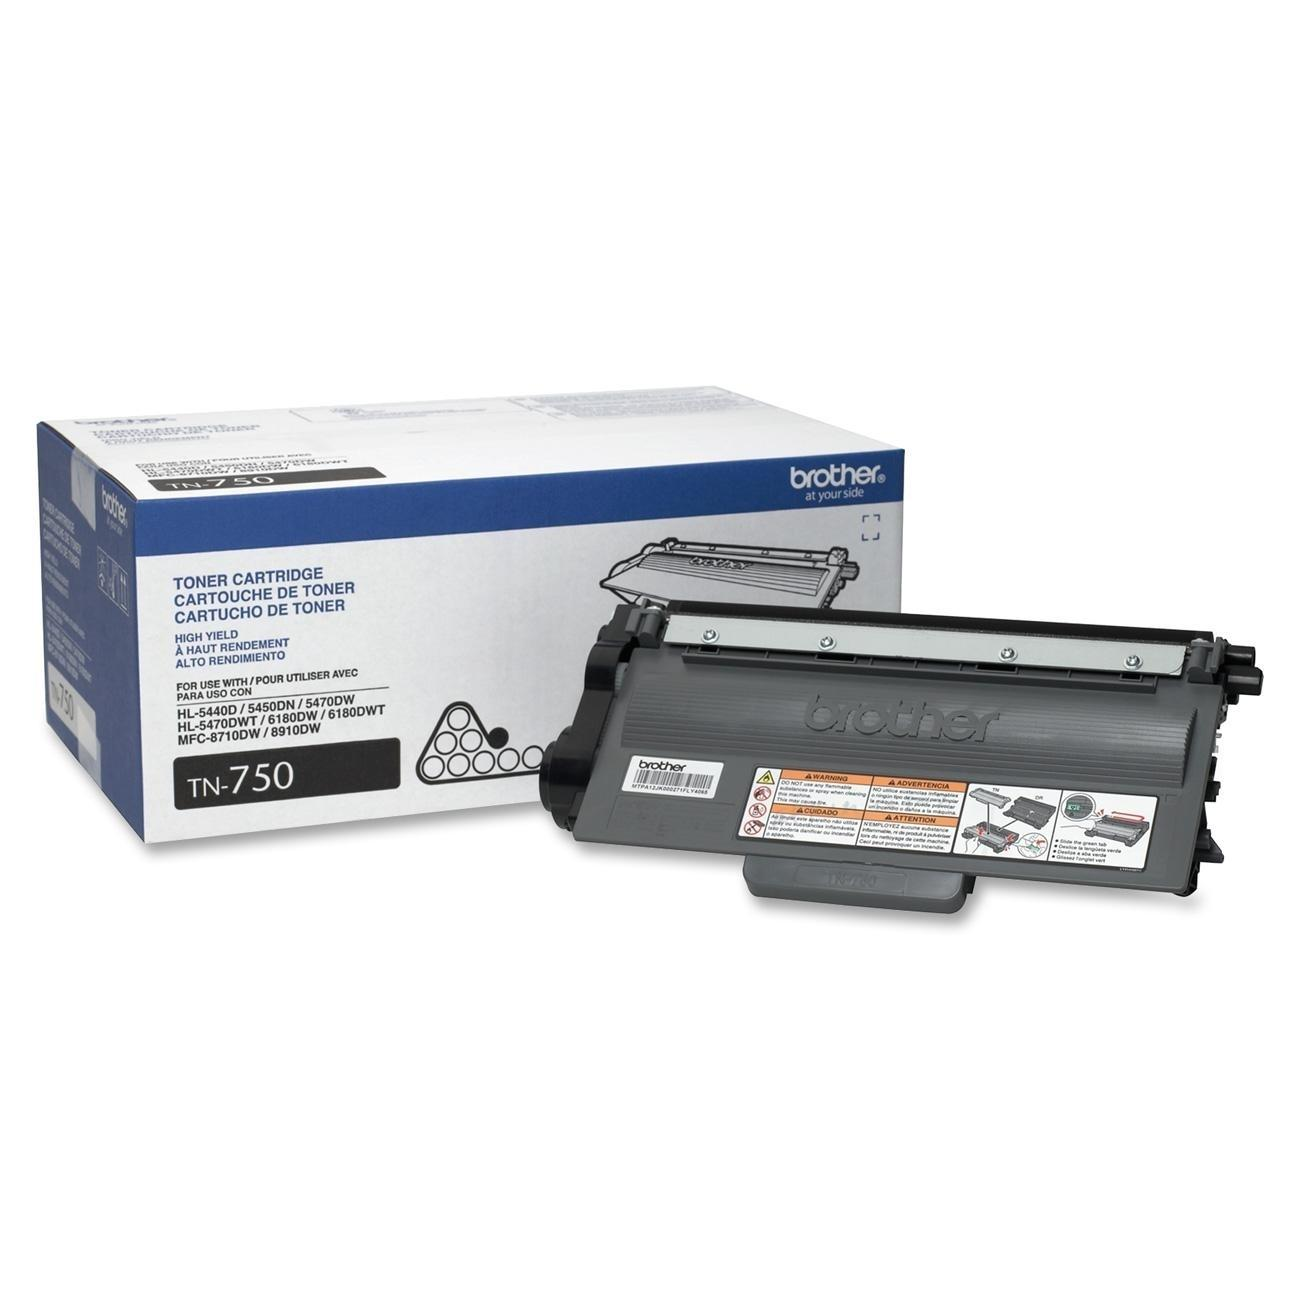 Brother TN-750 OEM Black Toner Cartridge High Yield